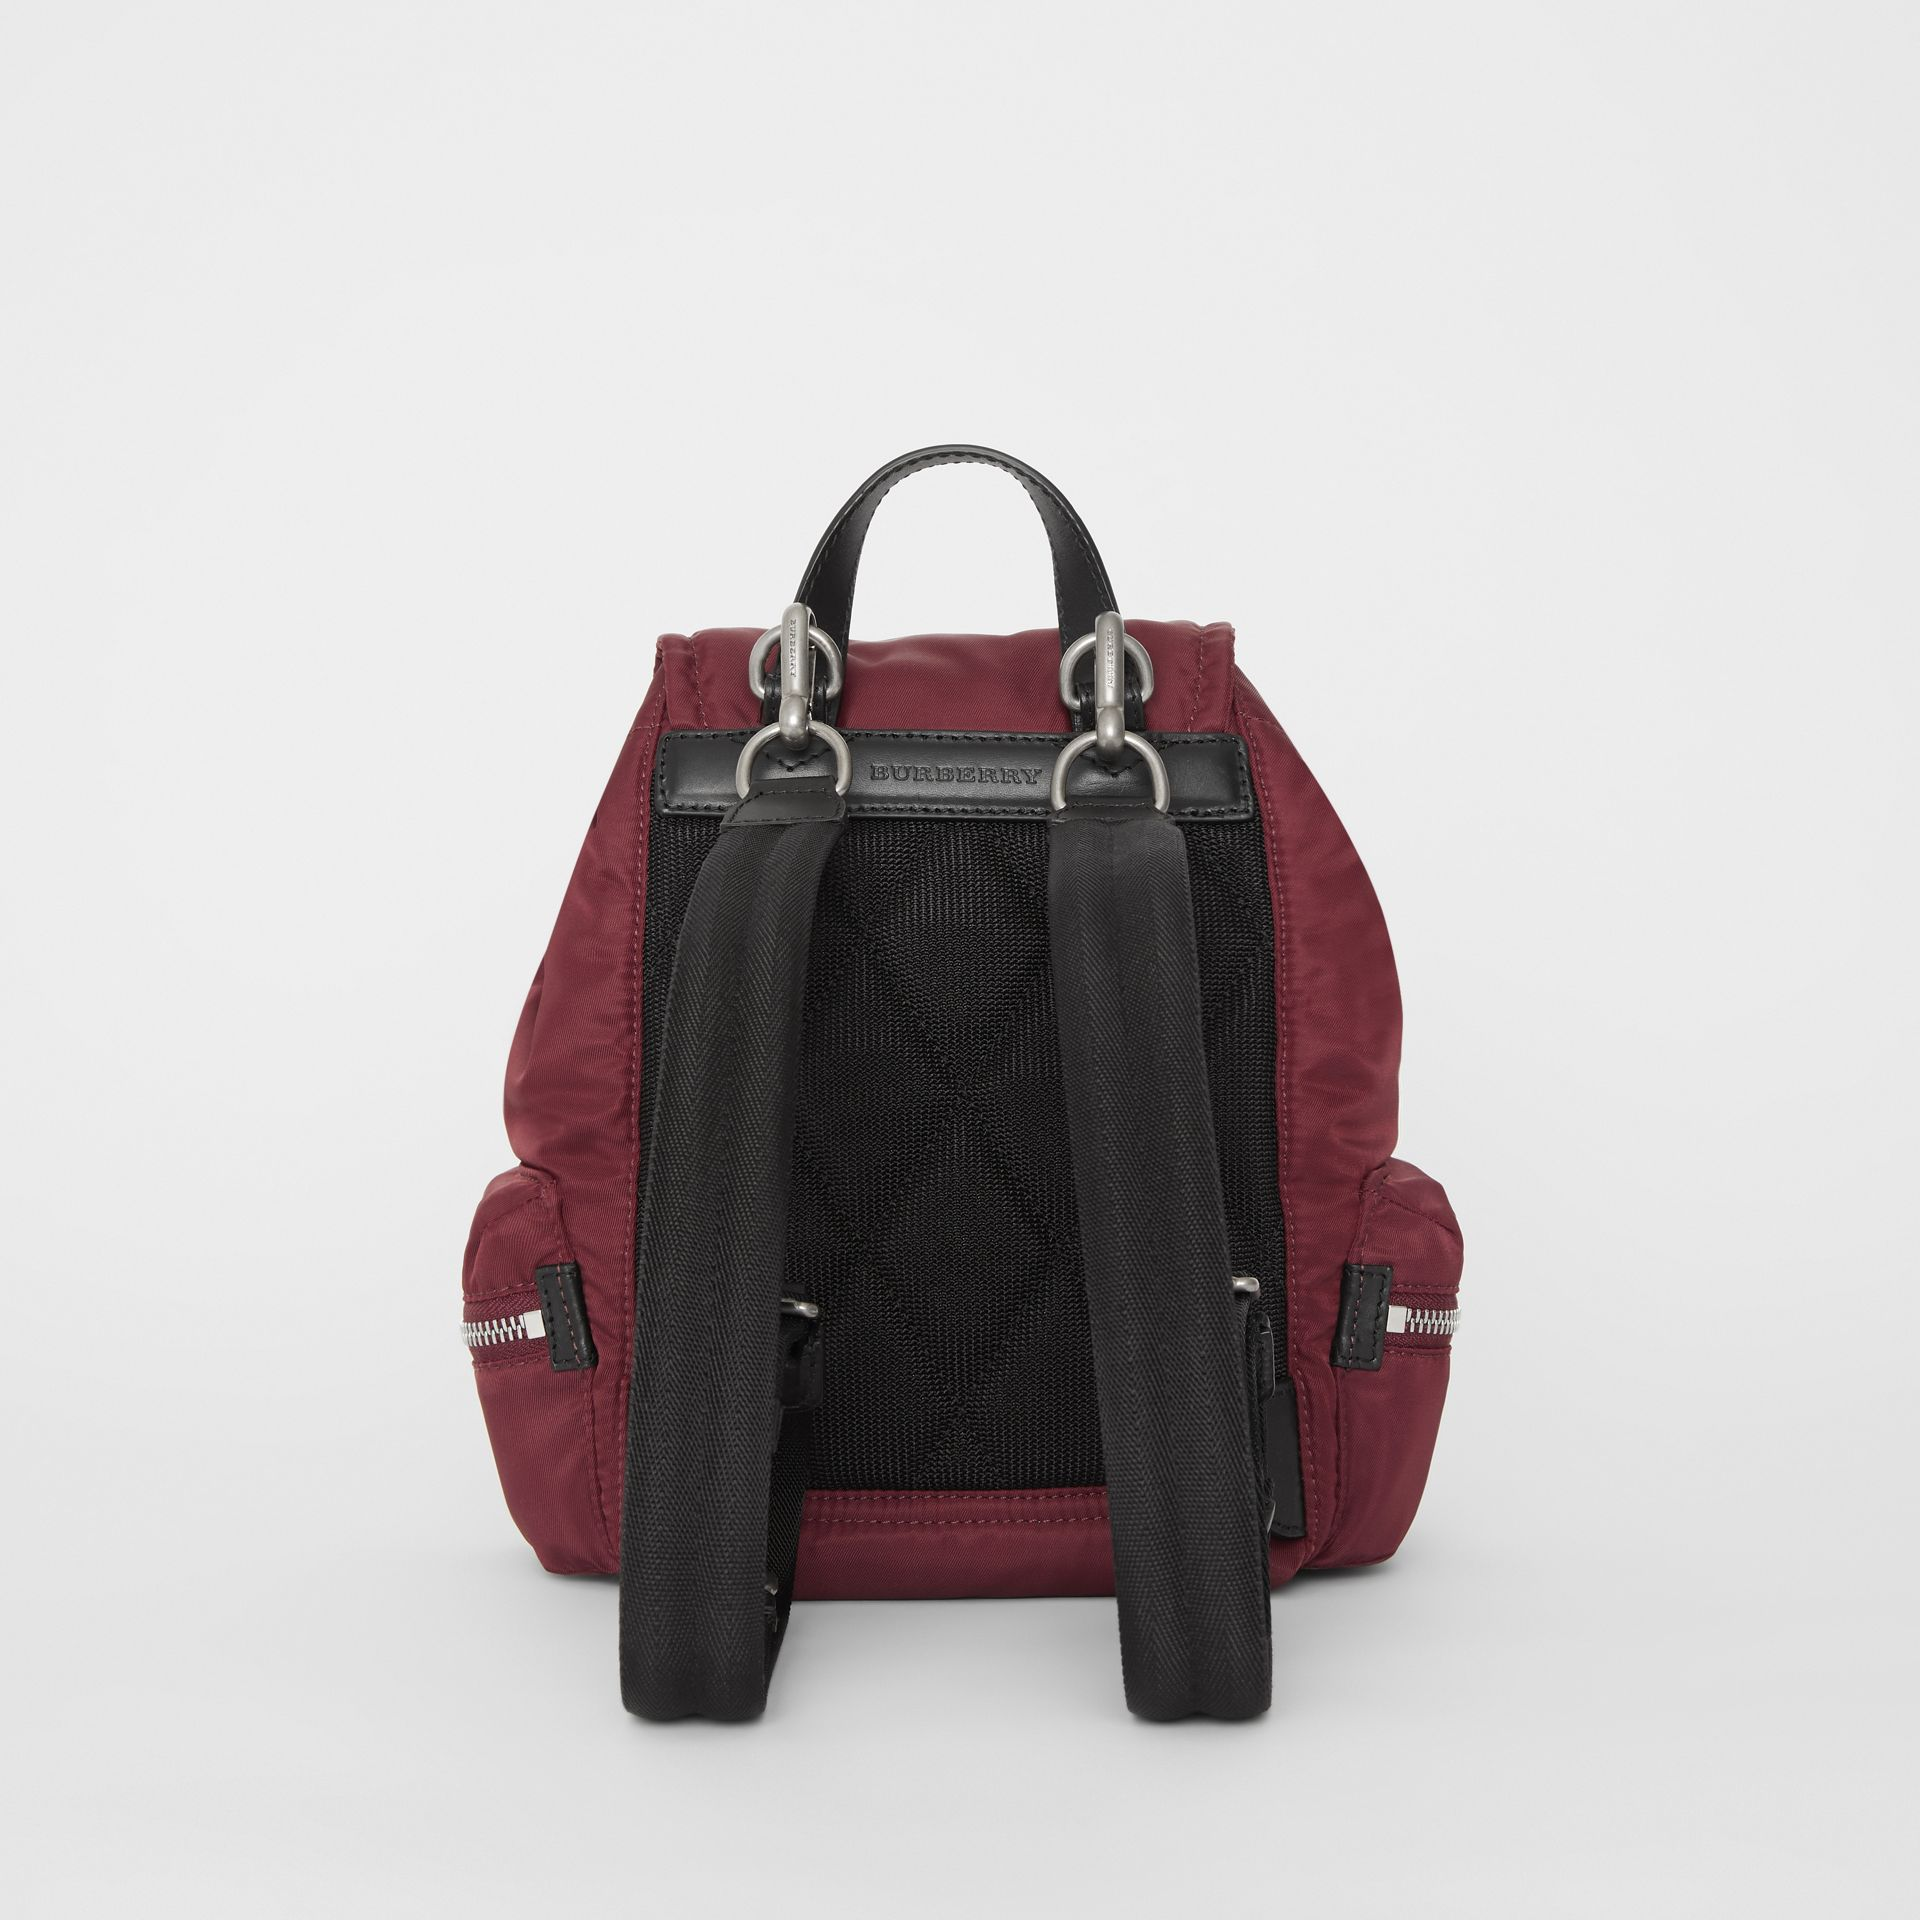 The Small Crossbody Rucksack in Puffer Nylon in Burgundy Red - Women | Burberry - gallery image 8